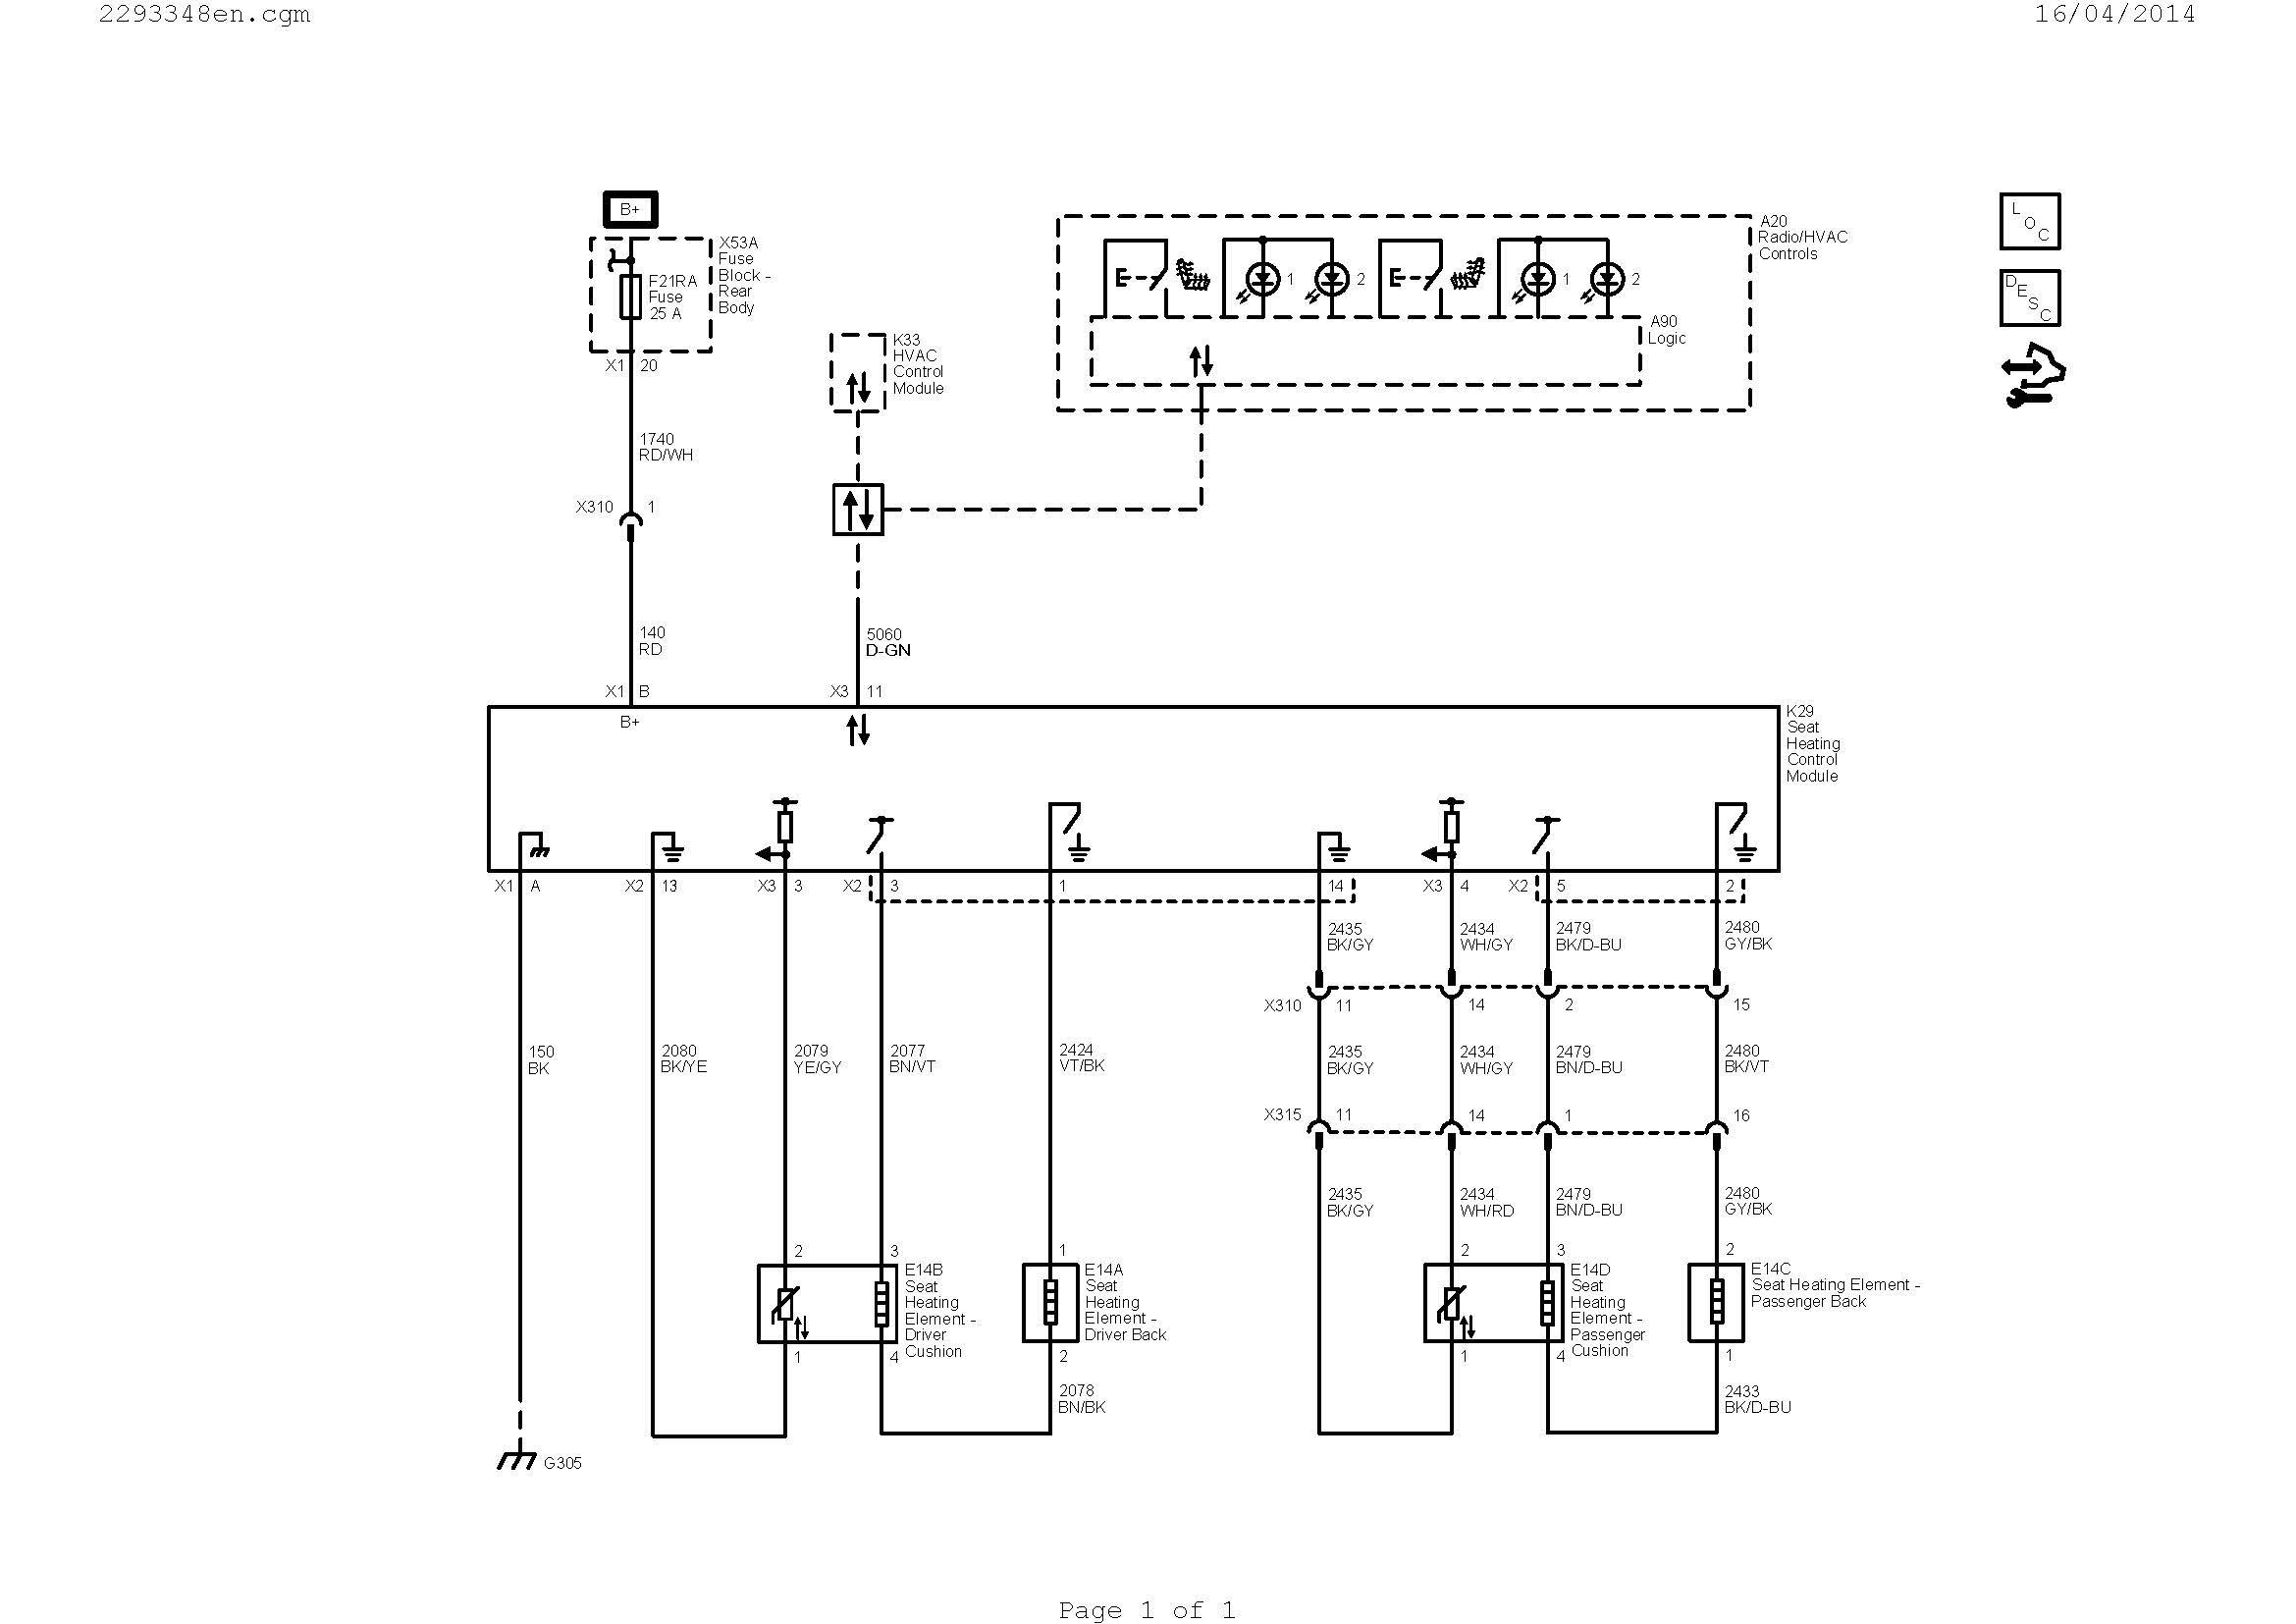 hobart mixer h600 wiring diagram Collection-ac thermostat wiring diagram Collection Wiring A Ac thermostat Diagram New Wiring Diagram Ac Valid 17-s